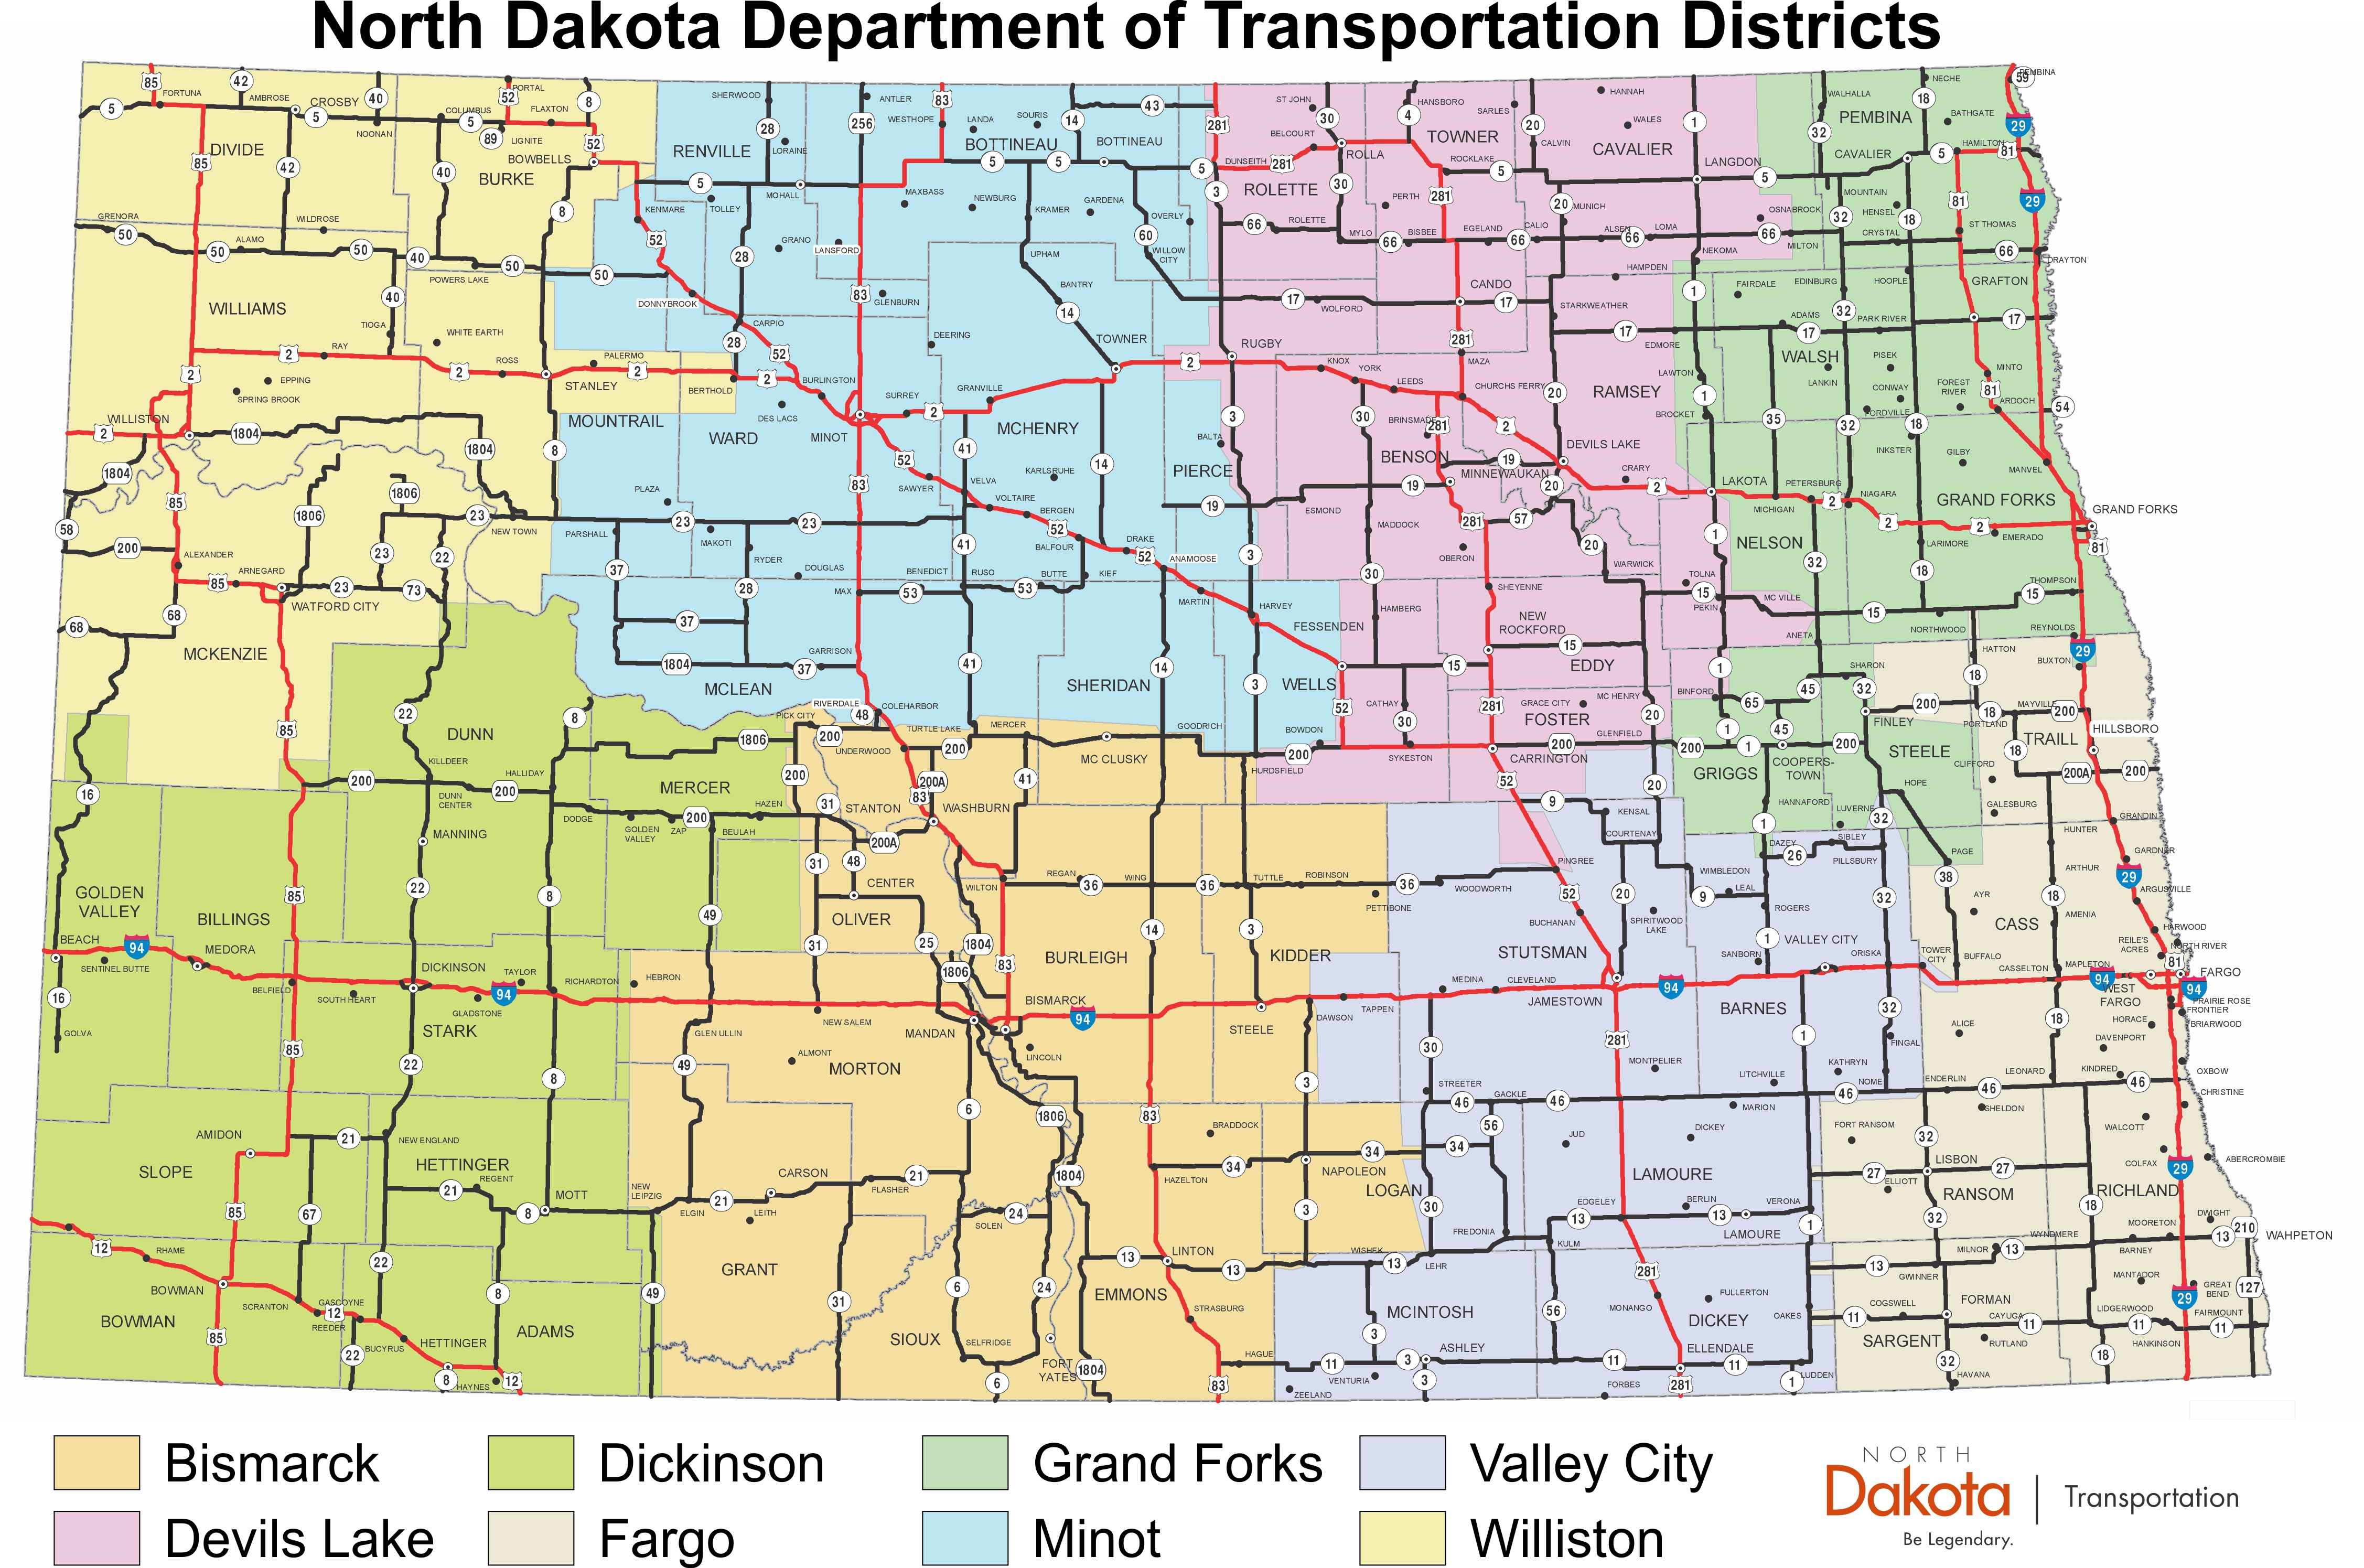 NDDOT - NDDOT Districts